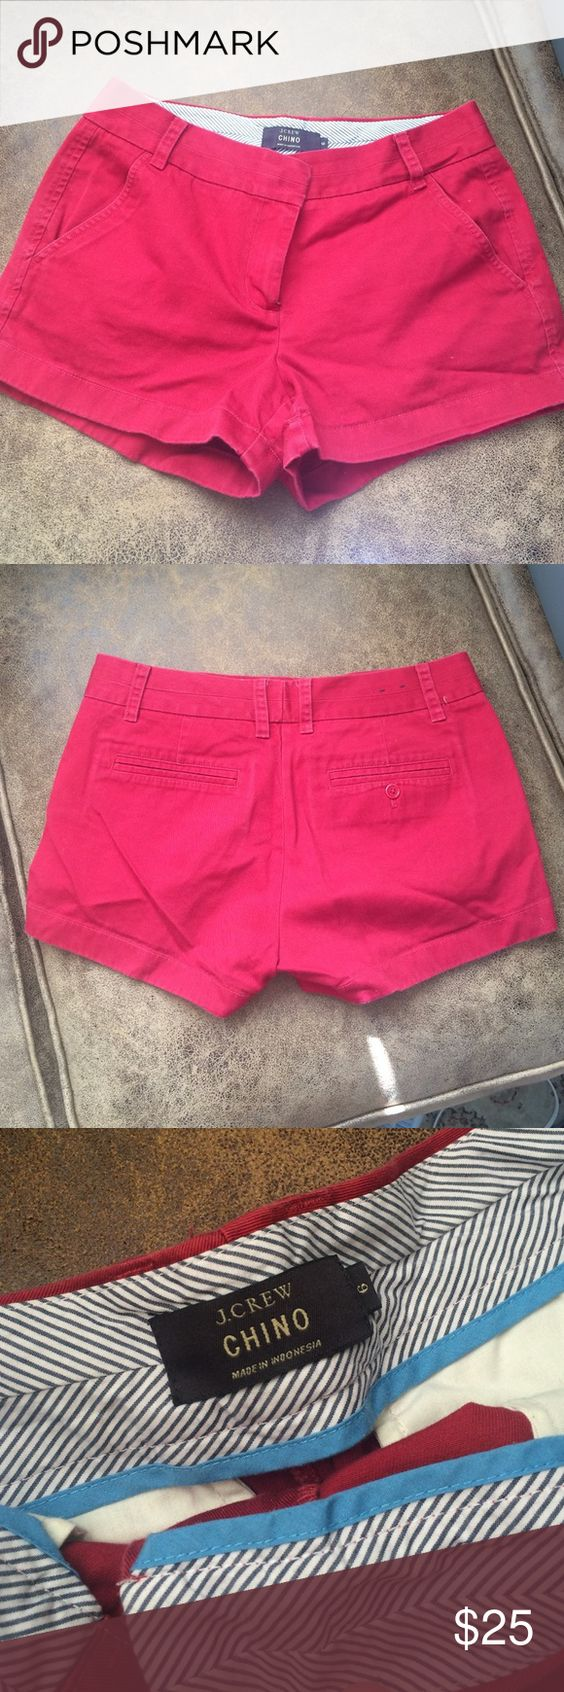 J. Crew Chino Shorts Red size 6 J. Crew chinos are the best and most comfortable shorts around. This color is great for fall too! $25 or best offer. J. Crew Shorts